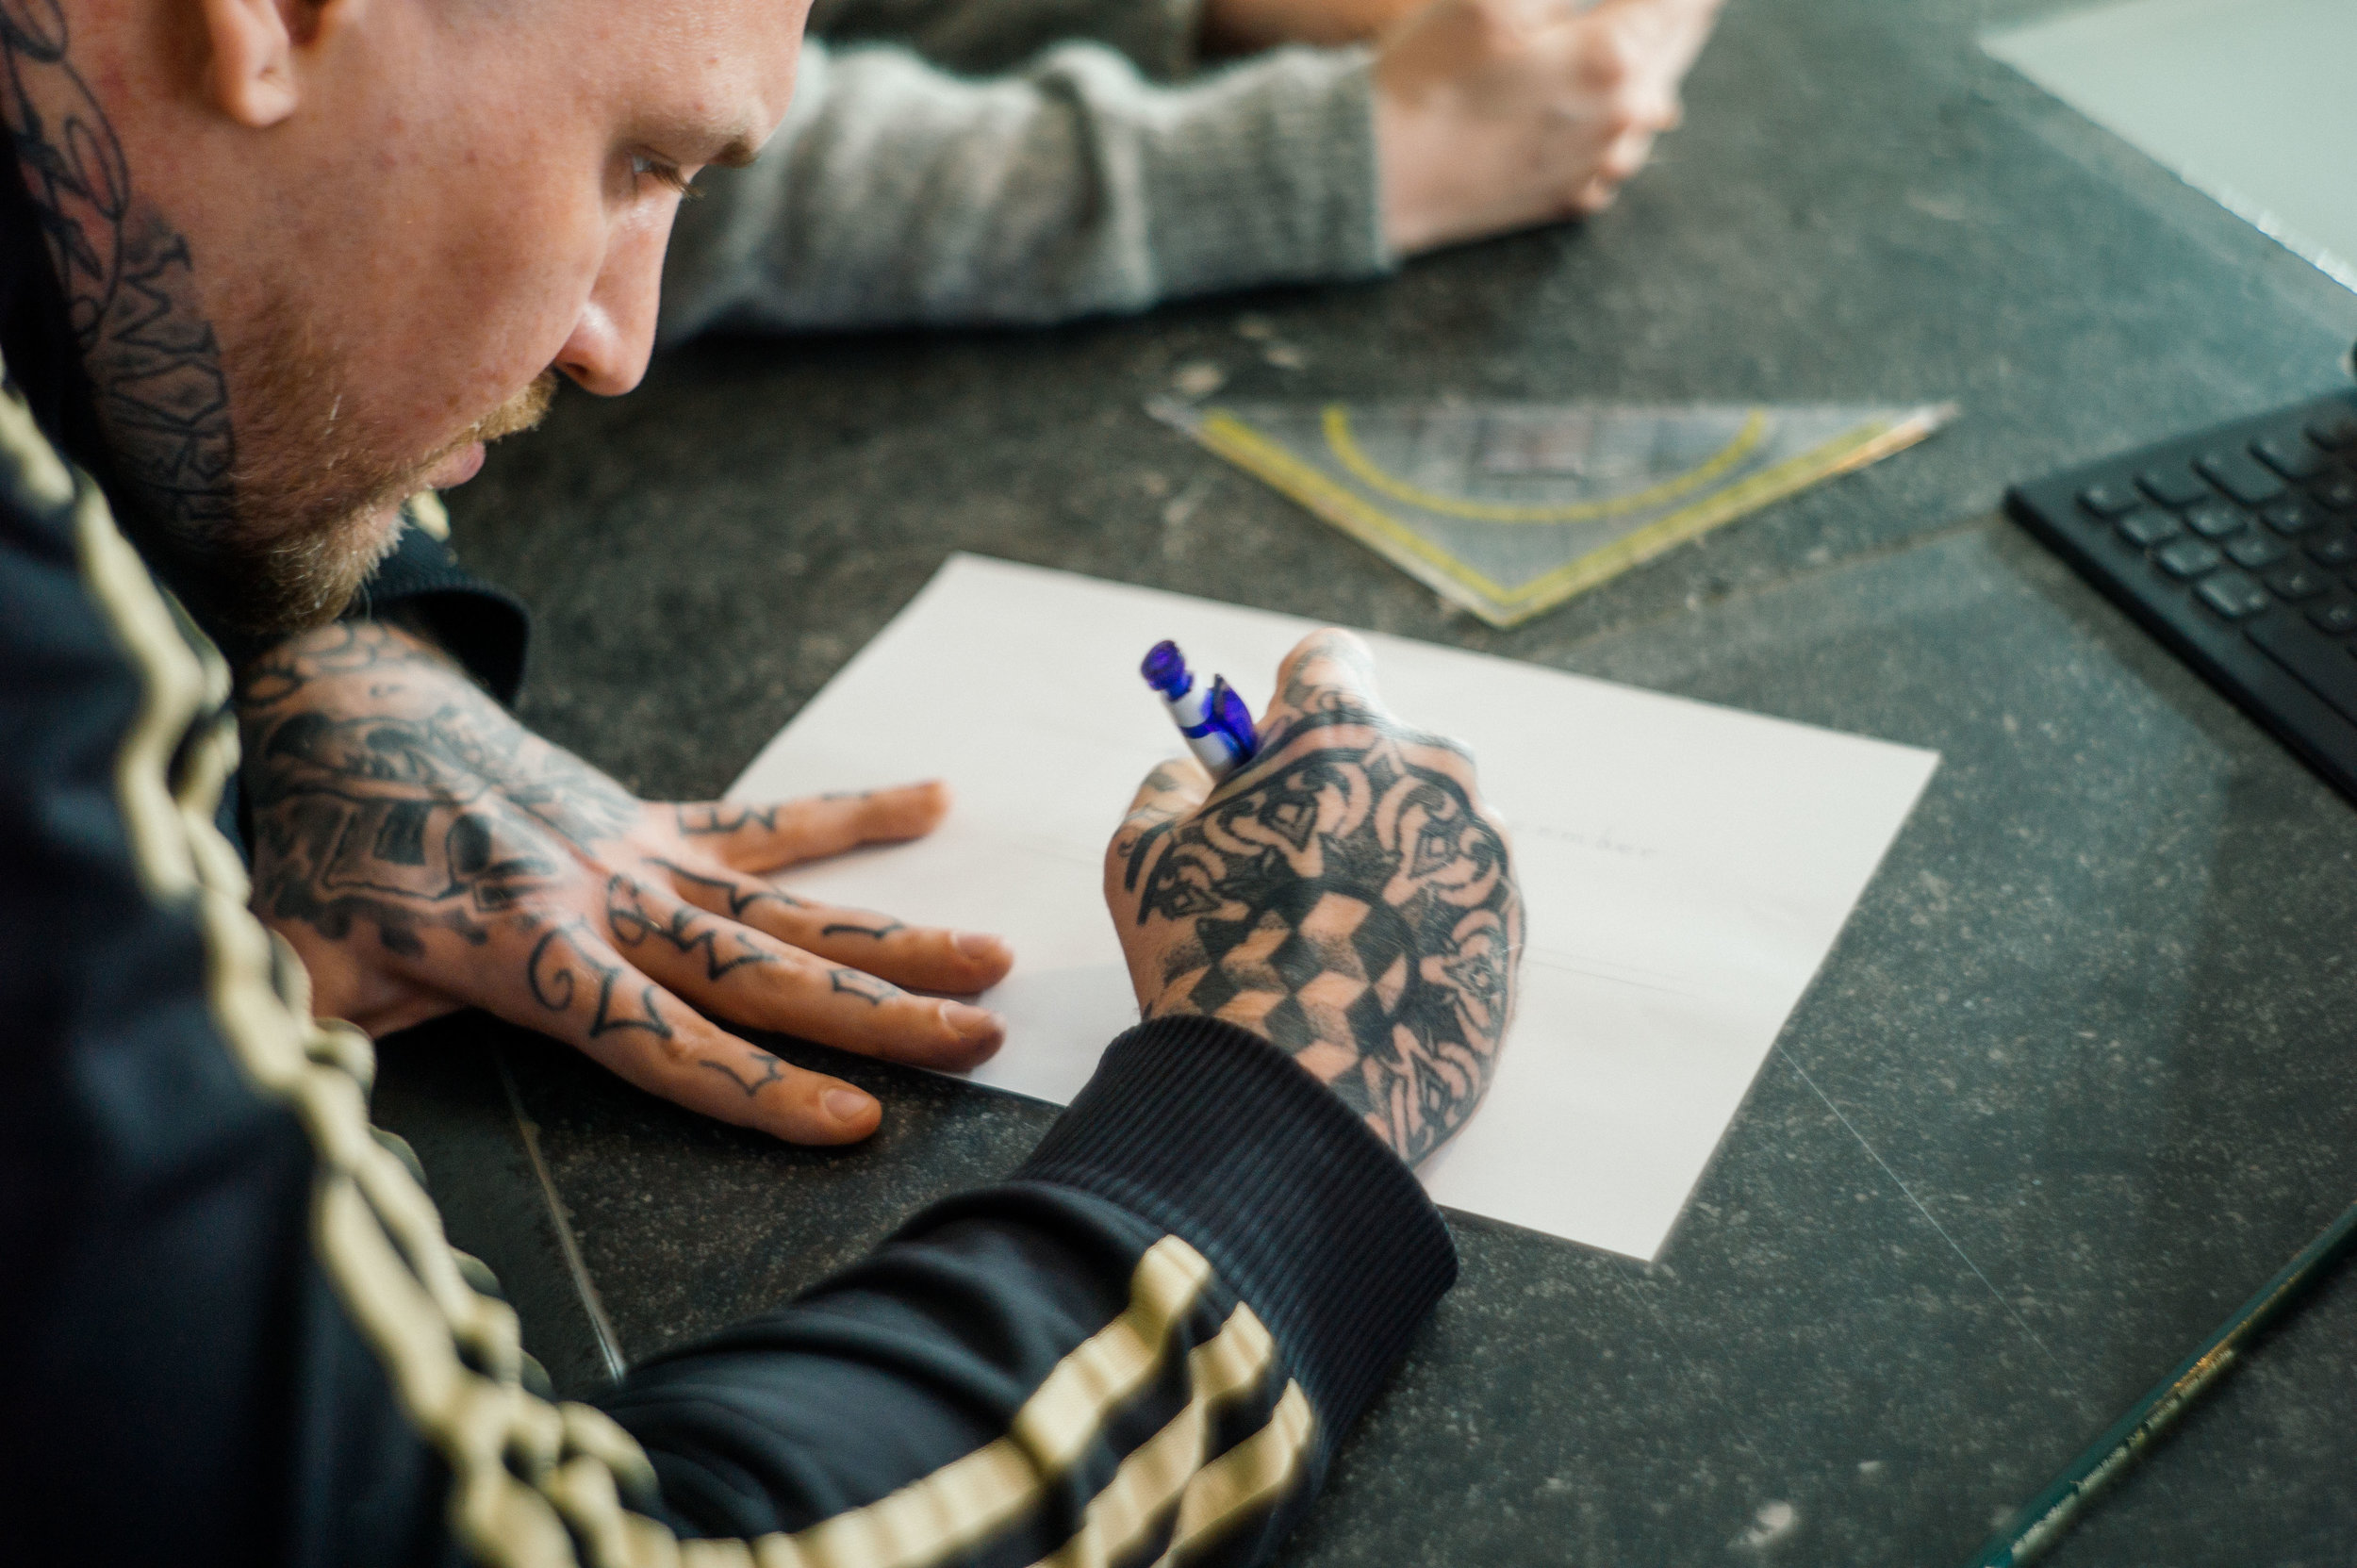 Choosing an artist - How do I choose the artist that's right for me? What shops / artists should I avoid? What's the best way to get in touch and book an appointment?